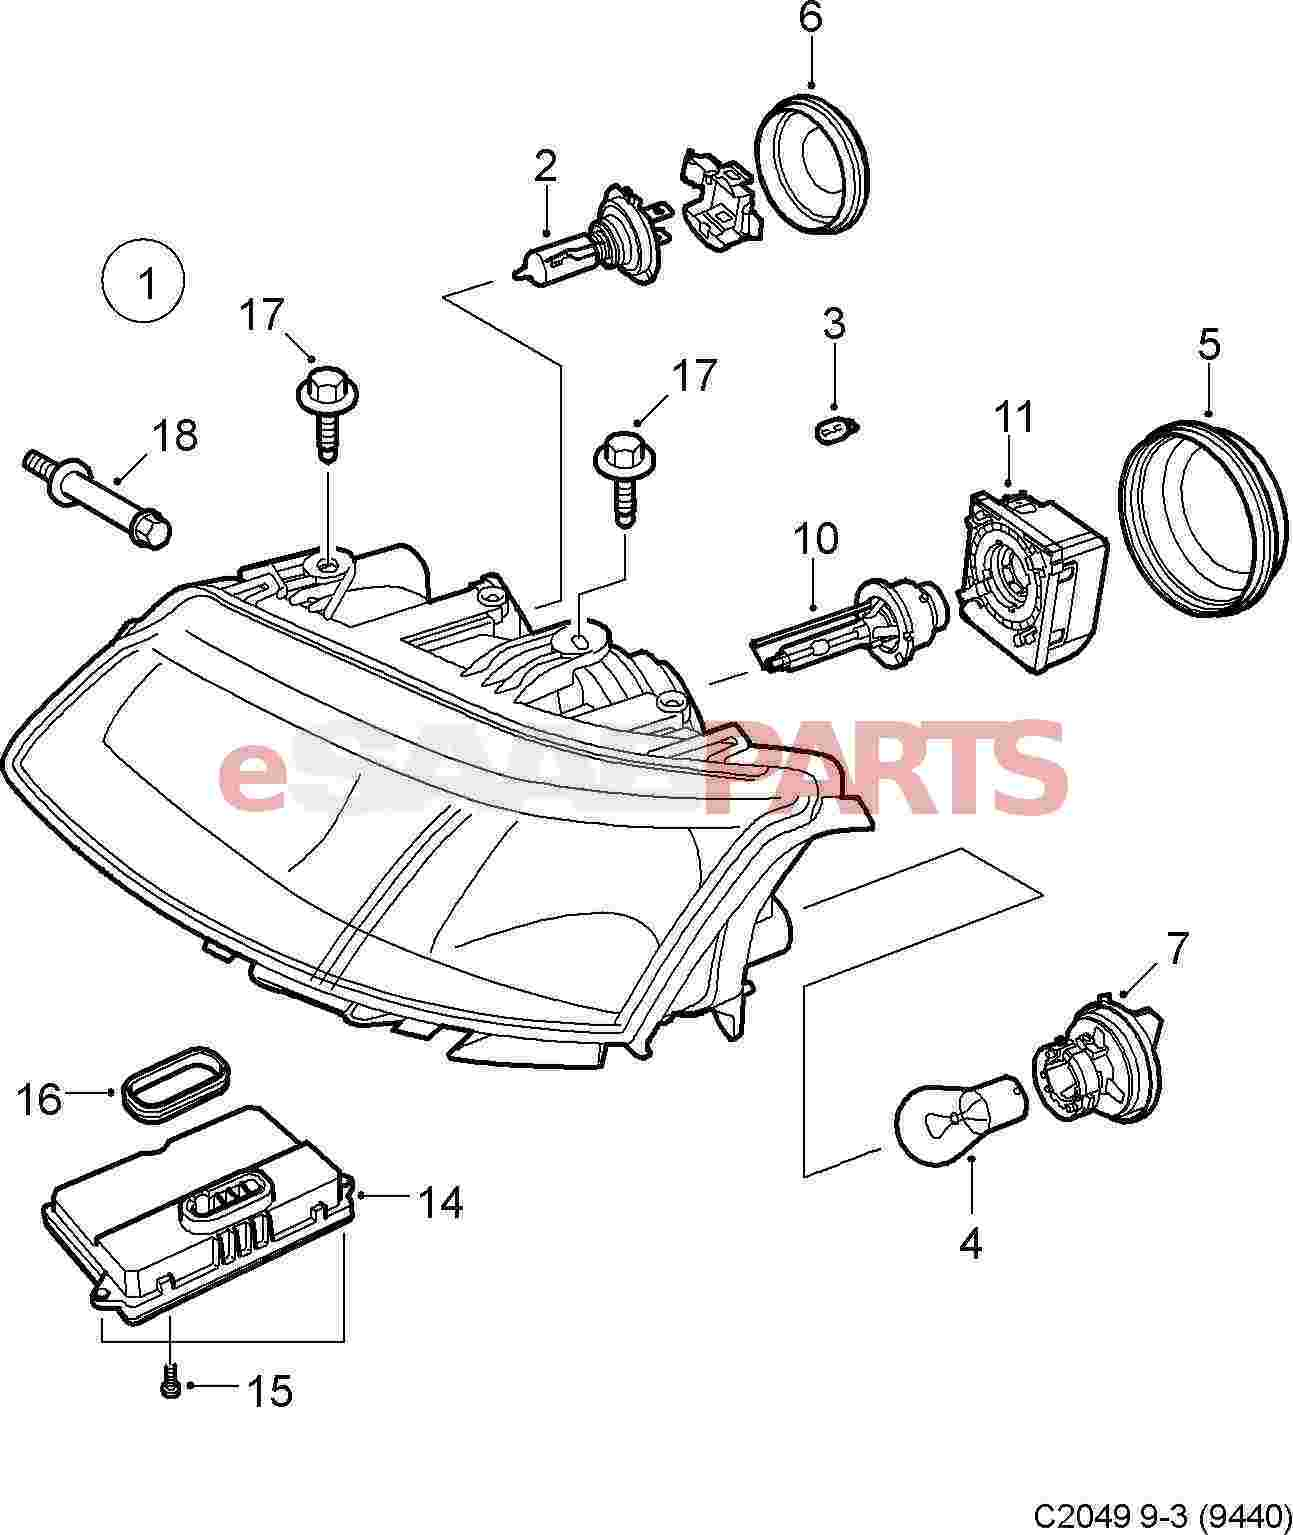 93169007 saab bulb genuine saab parts from esaabparts com rh esaabparts com Saab Headlight Replacement saab 93 headlight wiring diagram